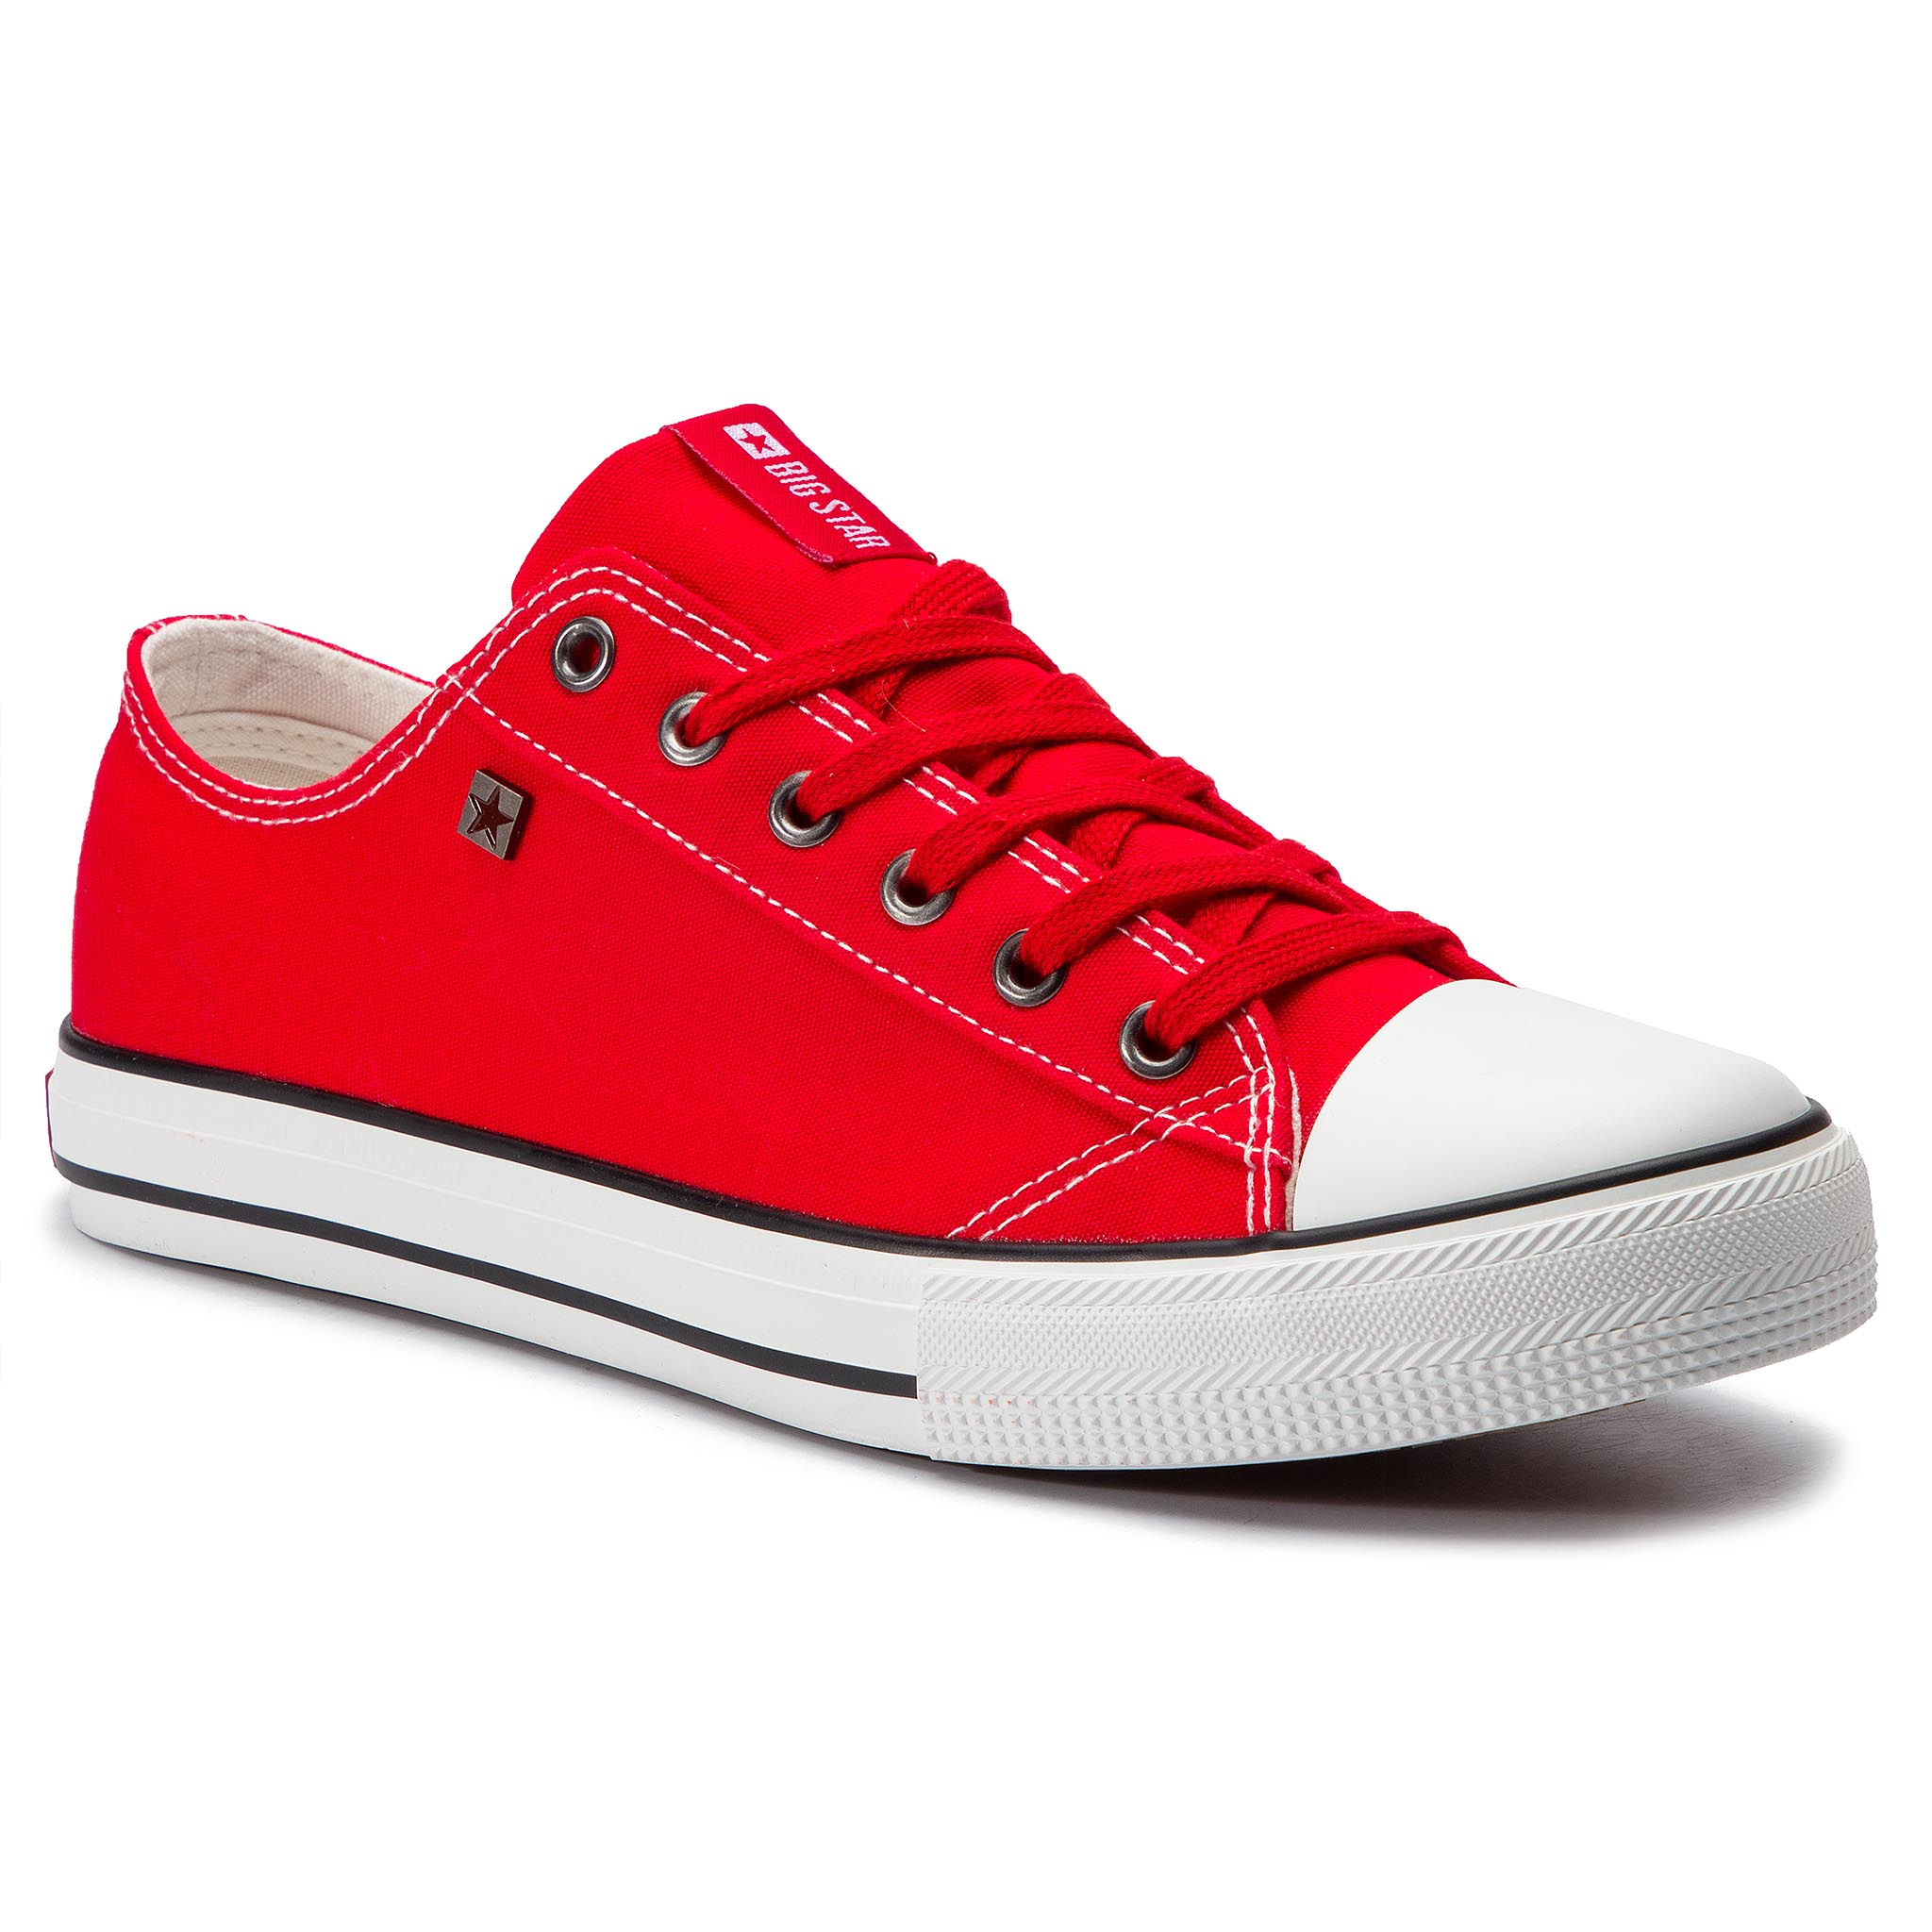 Sneakers BIG STAR - DD274A234R36 Red